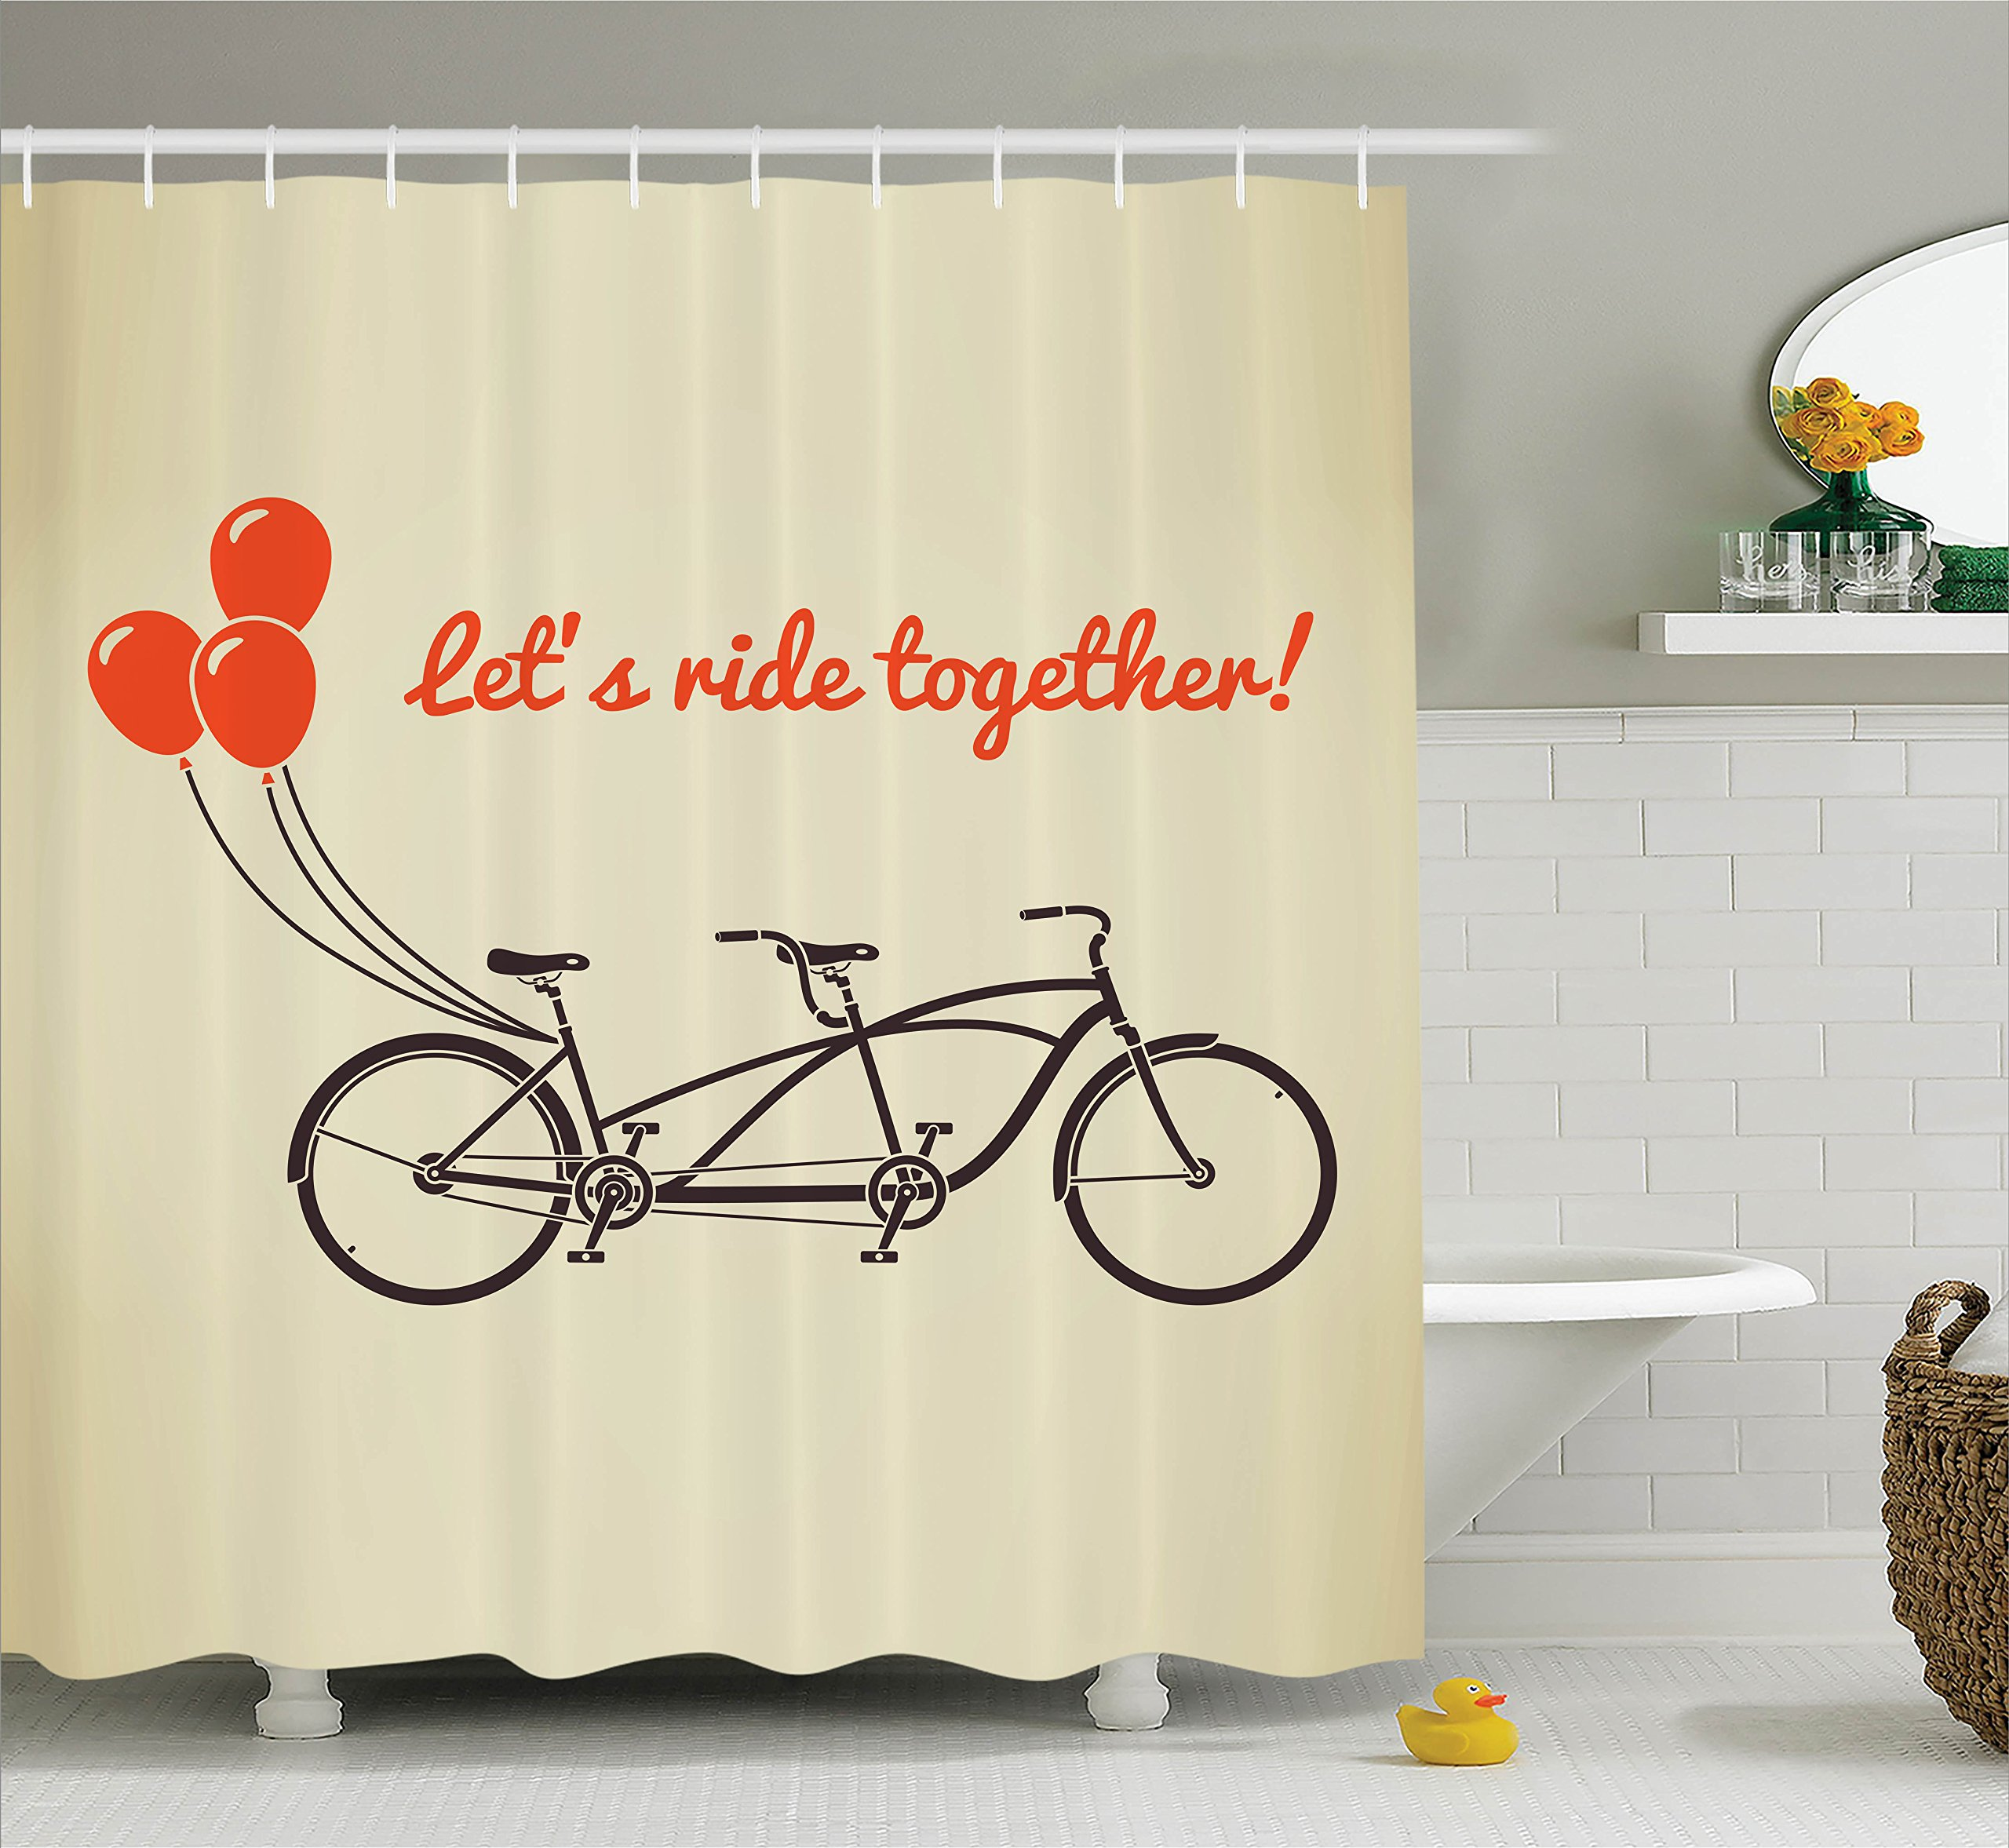 Ambesonne Vintage Decor Collection, Classic Romantic Couple Bikes with Retro Flying Baloons in Sky Family Love Future Graphic, Polyester Fabric Bathroom Shower Curtain Set with Hooks, Ecru Red